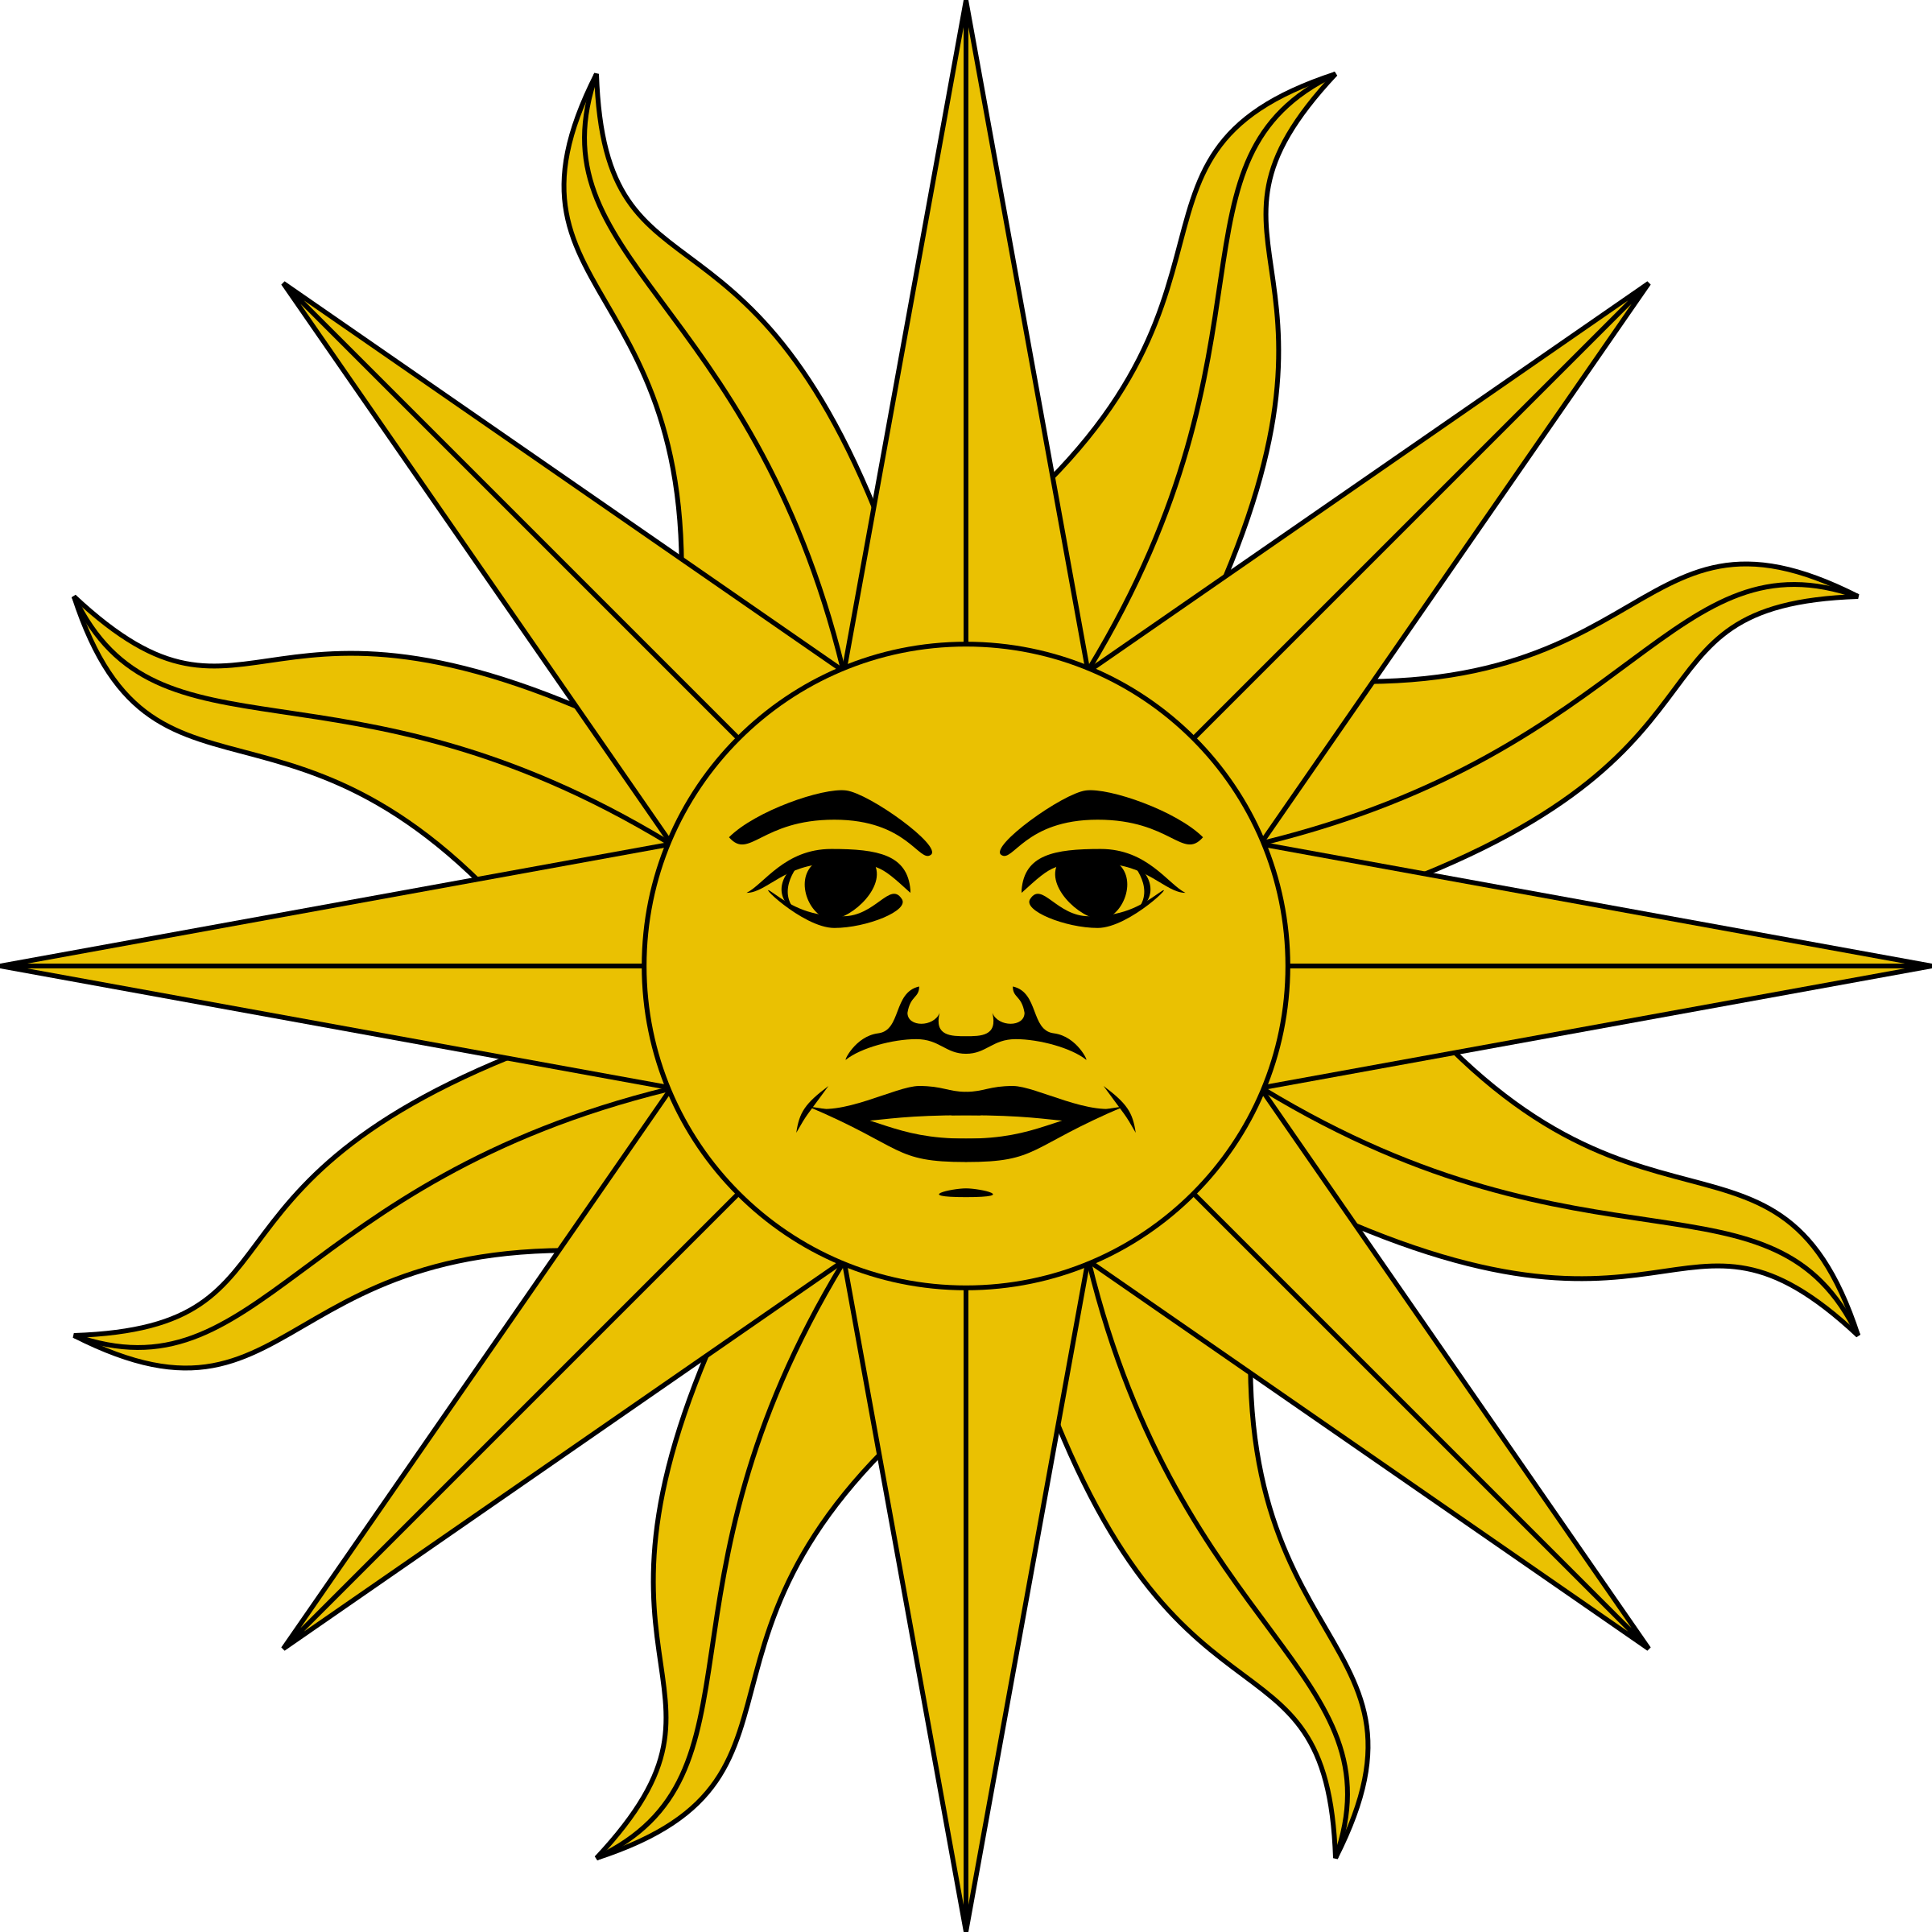 Sun Symbol 2 By Firkin Clipped From A Public Domain Drawing Of